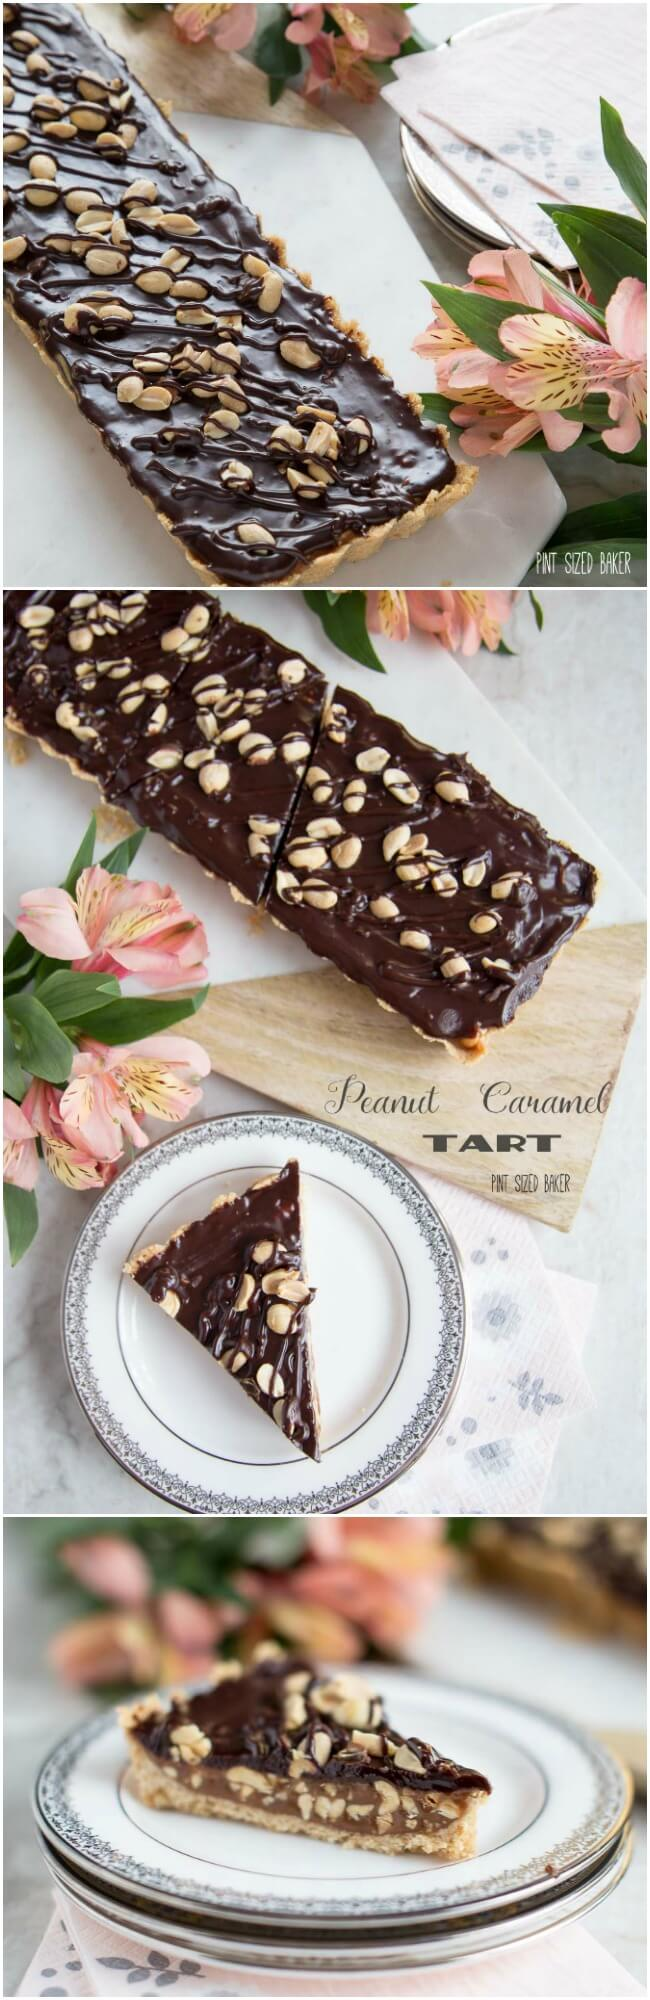 Peanut and Caramel Tart that is quick to make but so yummy to eat! I'll take two slices please.